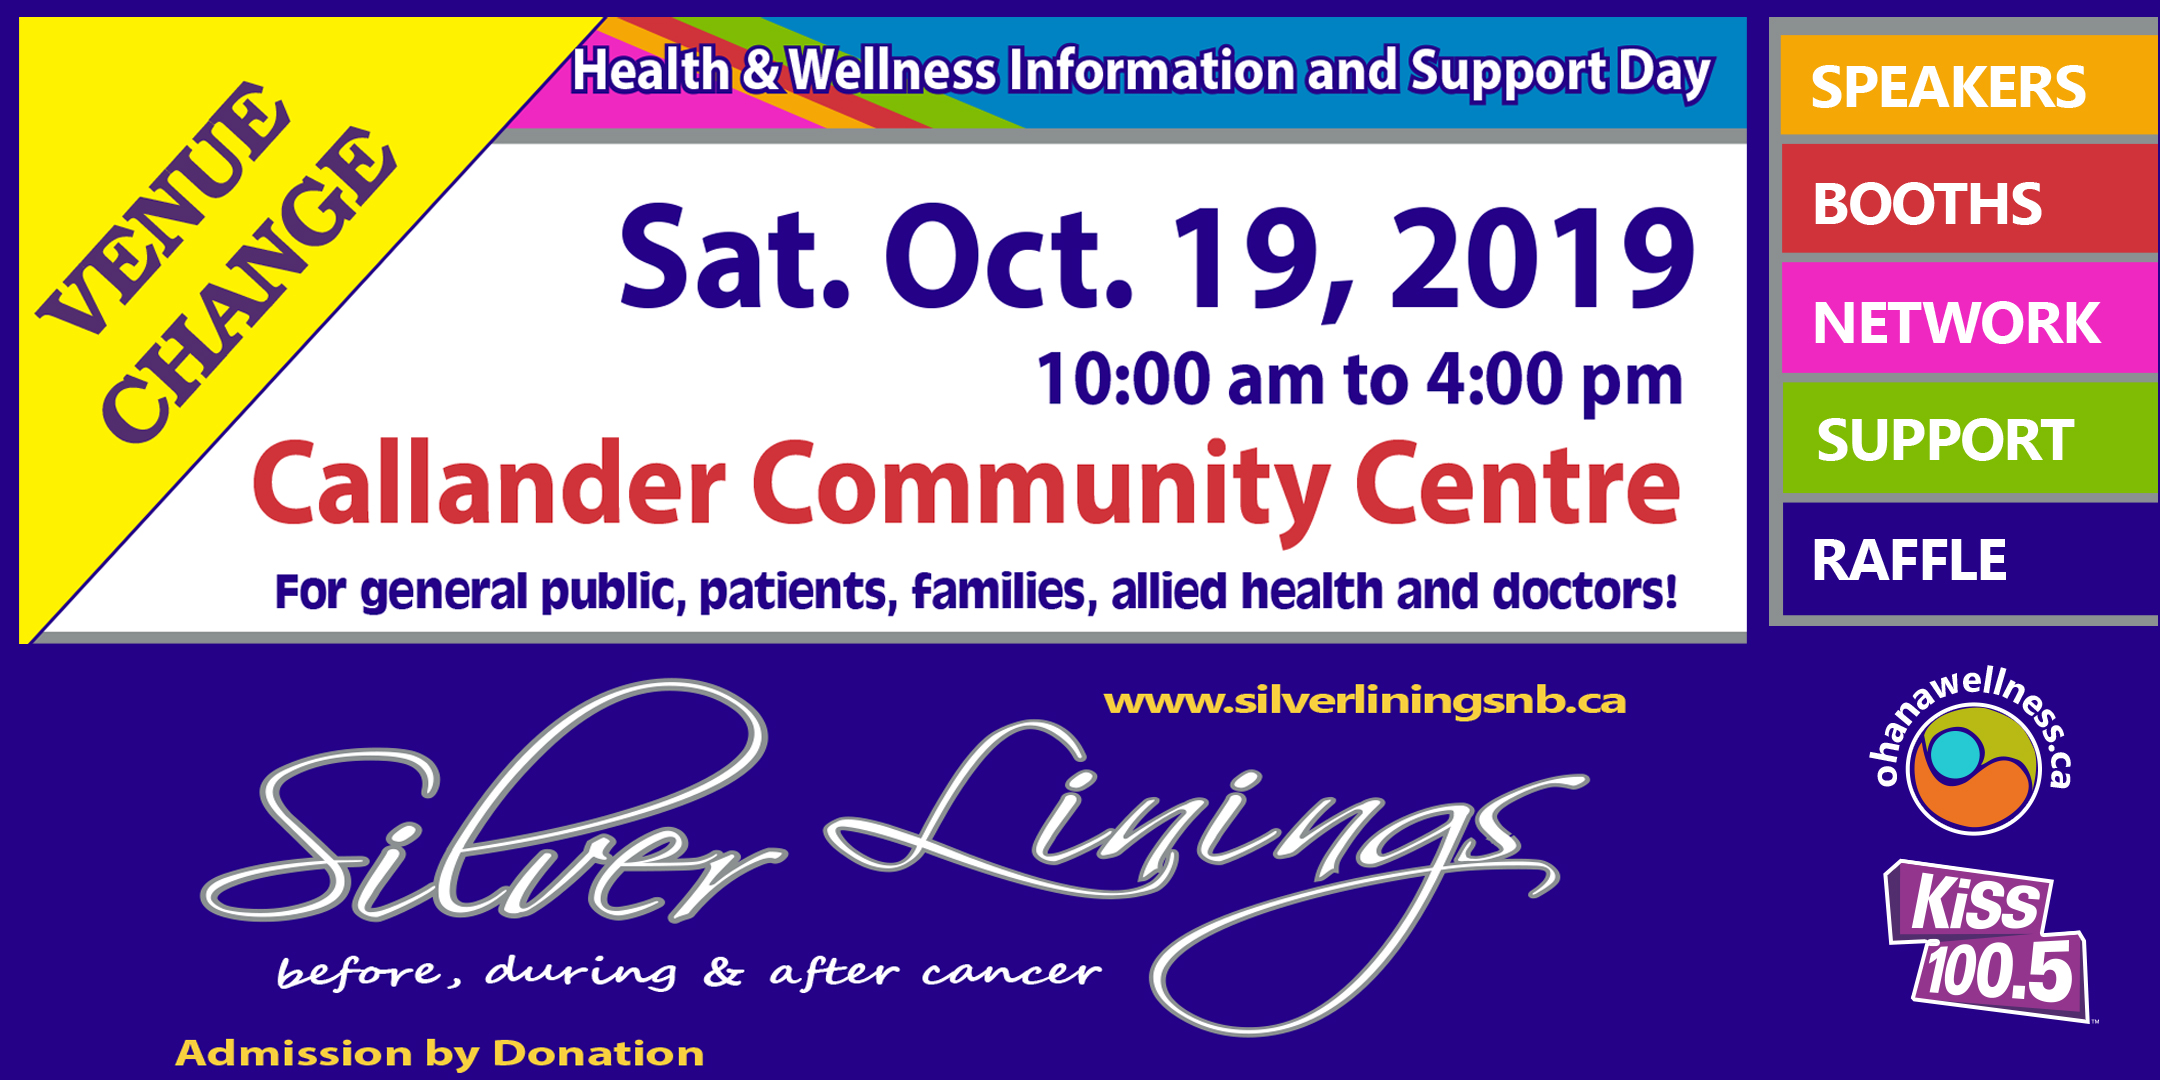 Silver Linings - before, during & after cancer. A Health & Wellness Information and Support Day